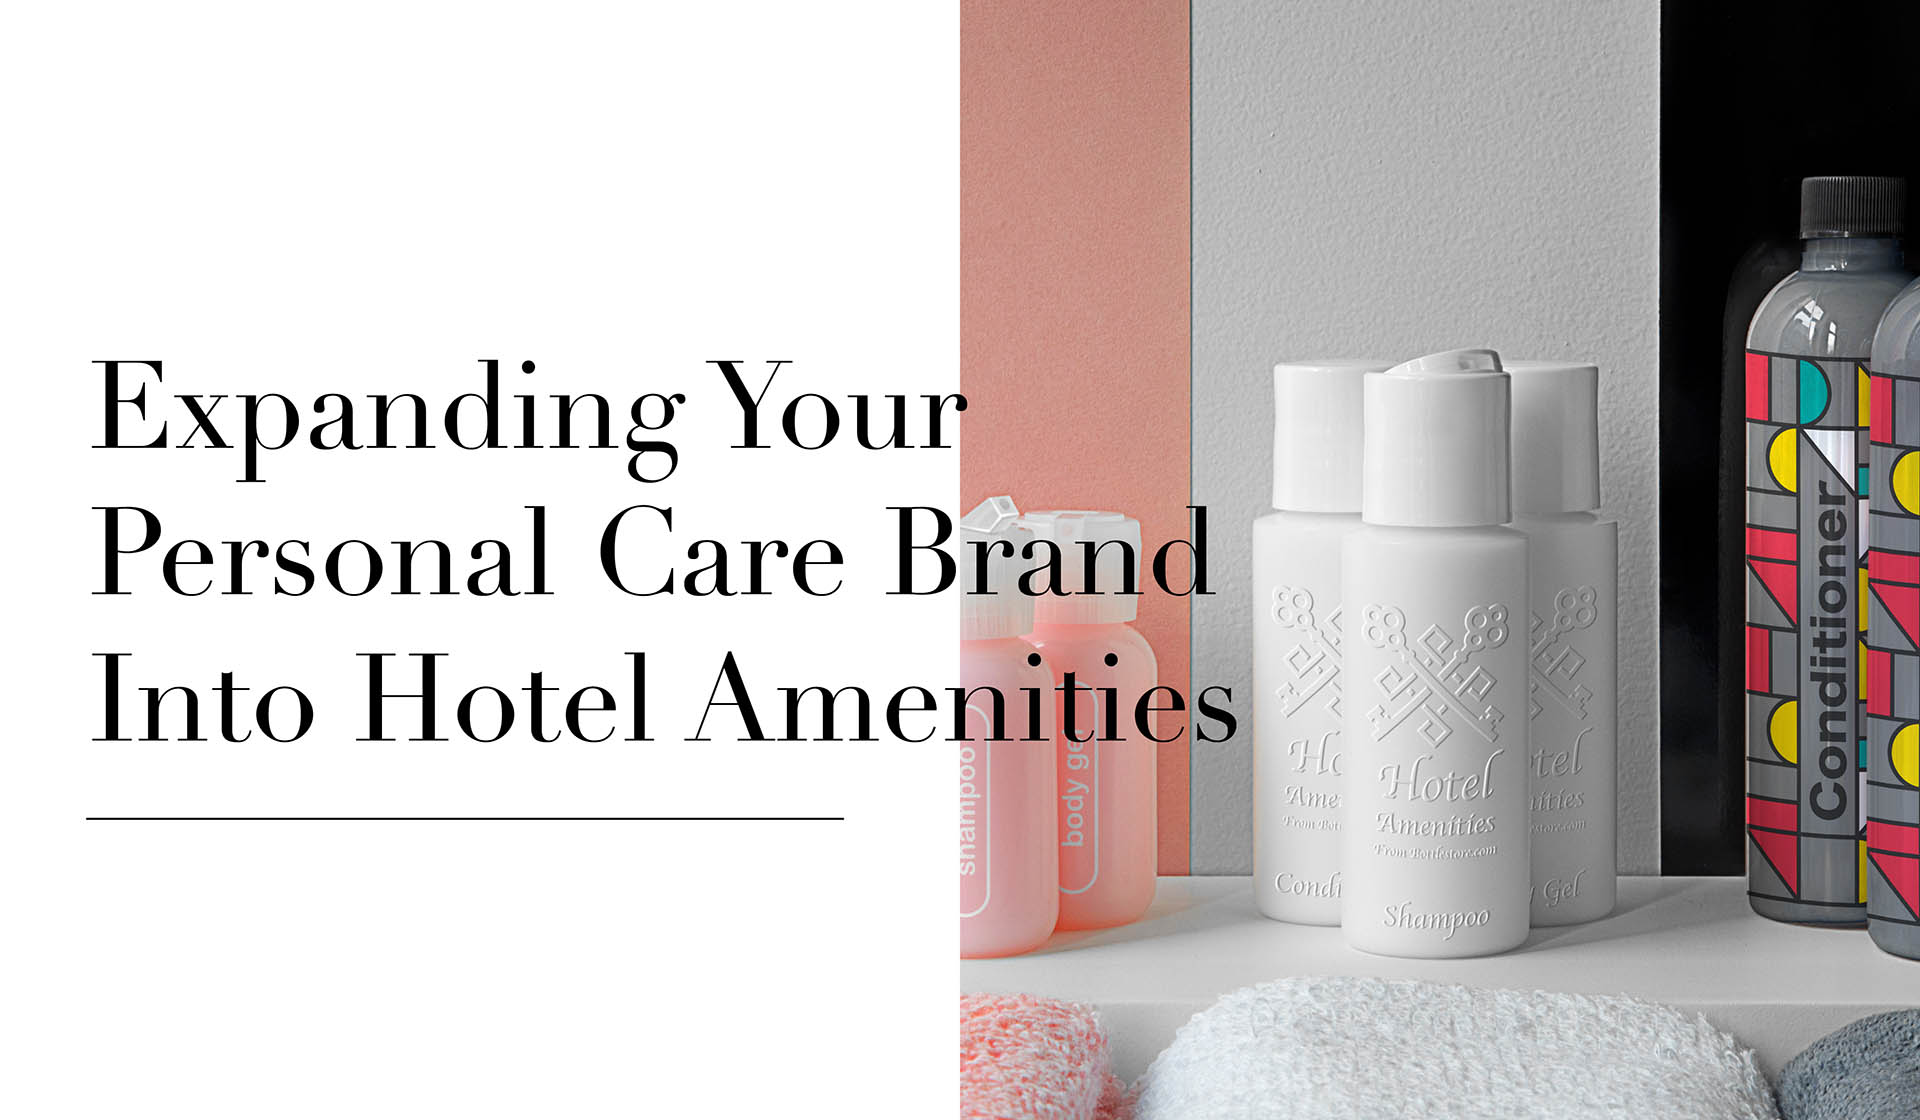 Expanding Your Personal Care Brand into Hotel Amenities